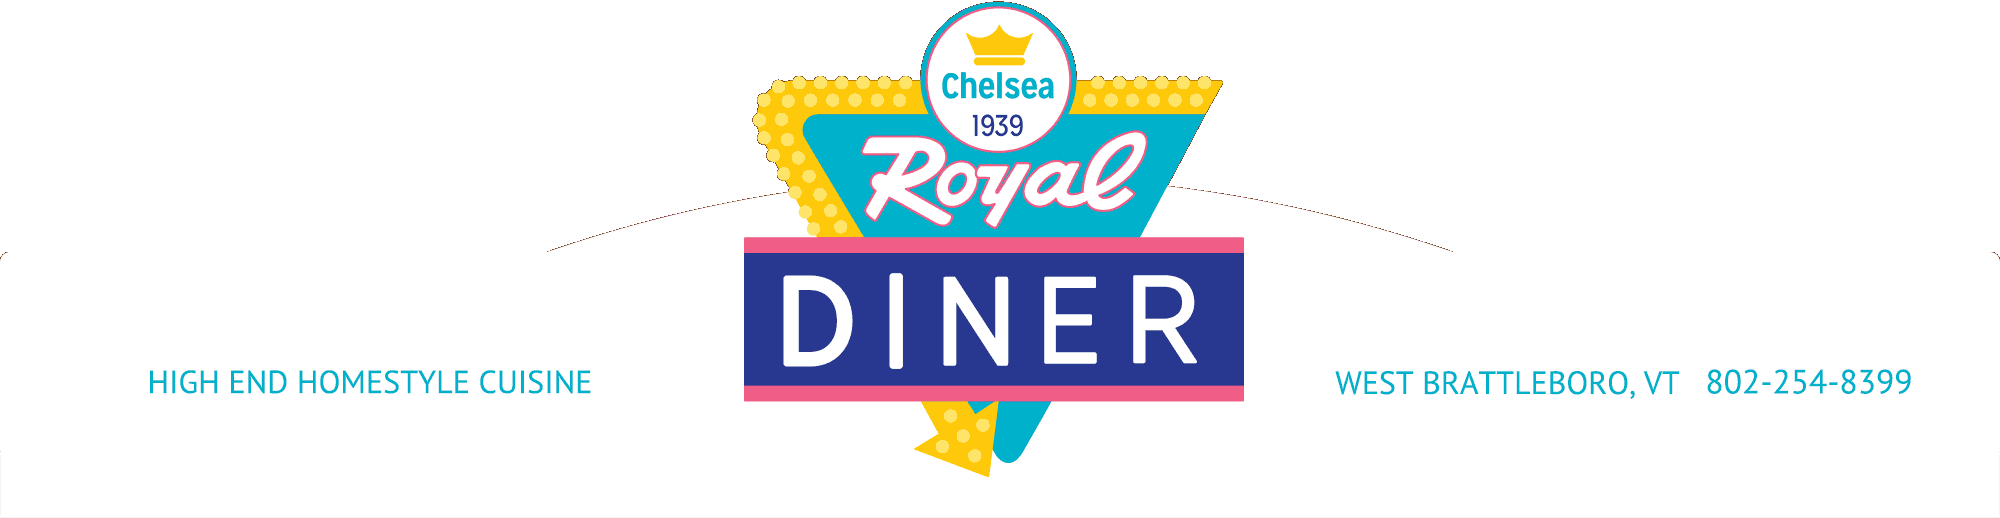 Chelsea Royal Diner - Homepage